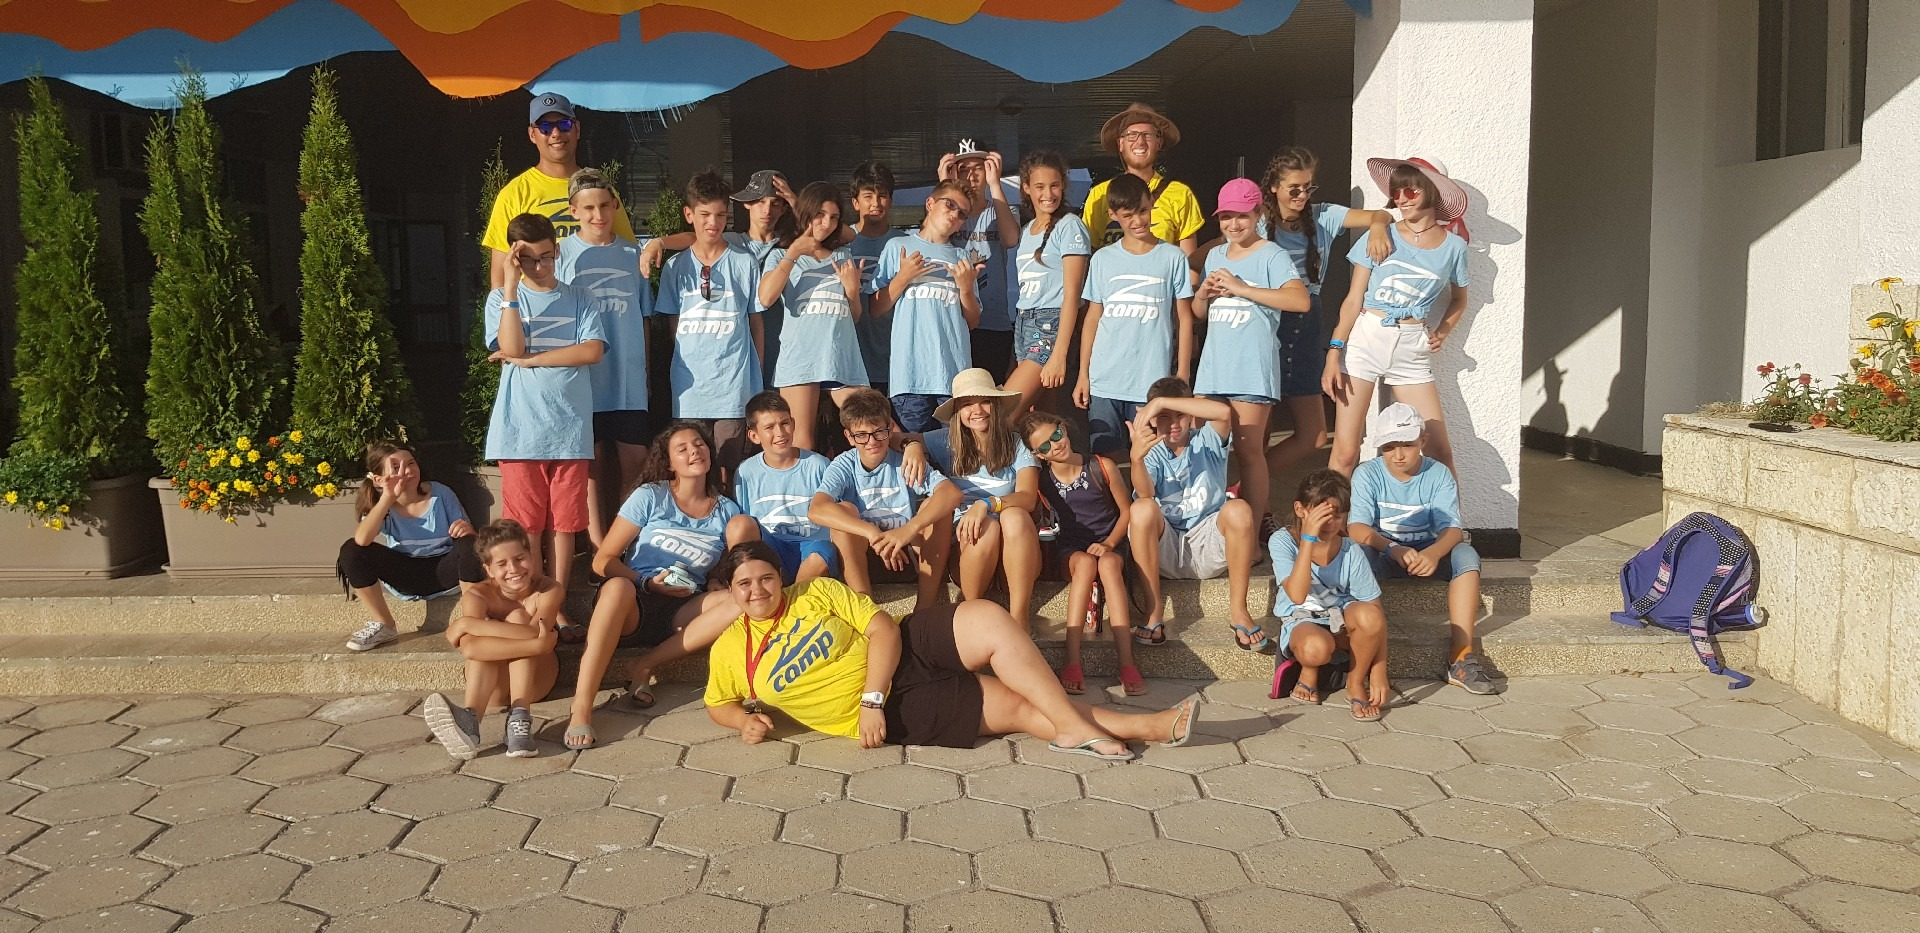 language vacations in Bulgaria for kids Z camp, day 32 -picture of the group, kids wear blue t-shirts with Z camp logo, teachers - yellow t-shirts